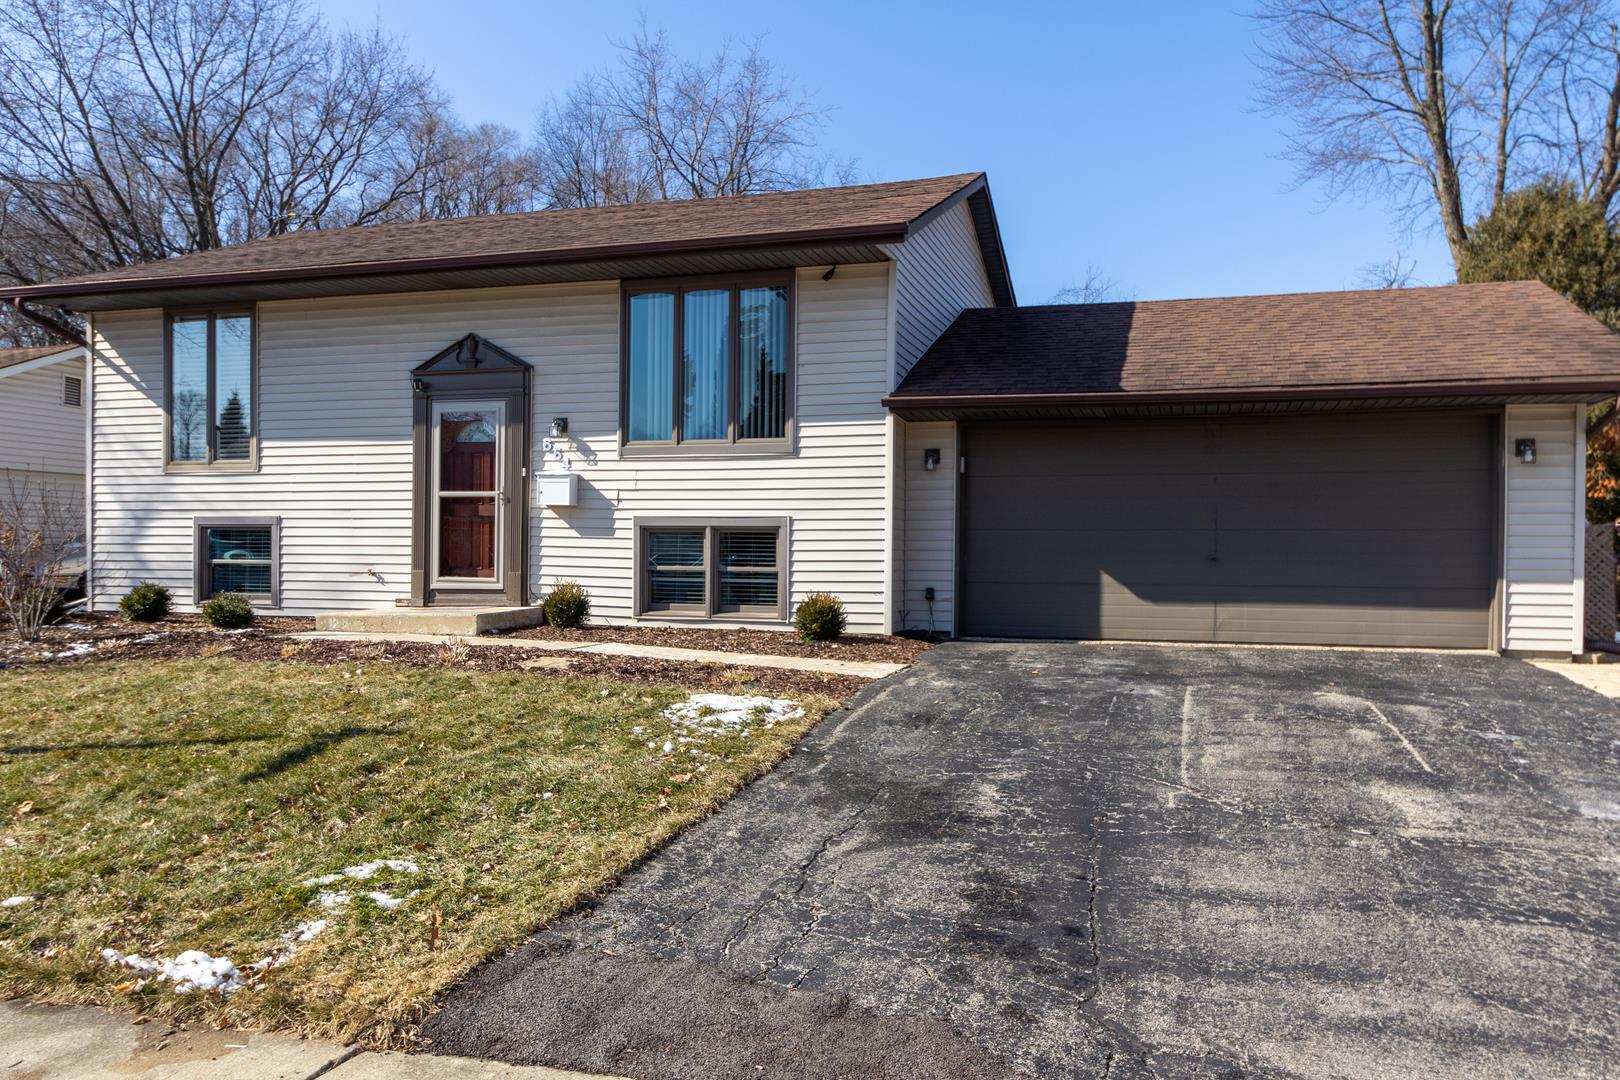 654 Springfield Drive, Roselle, IL 60172 - #: 10637424